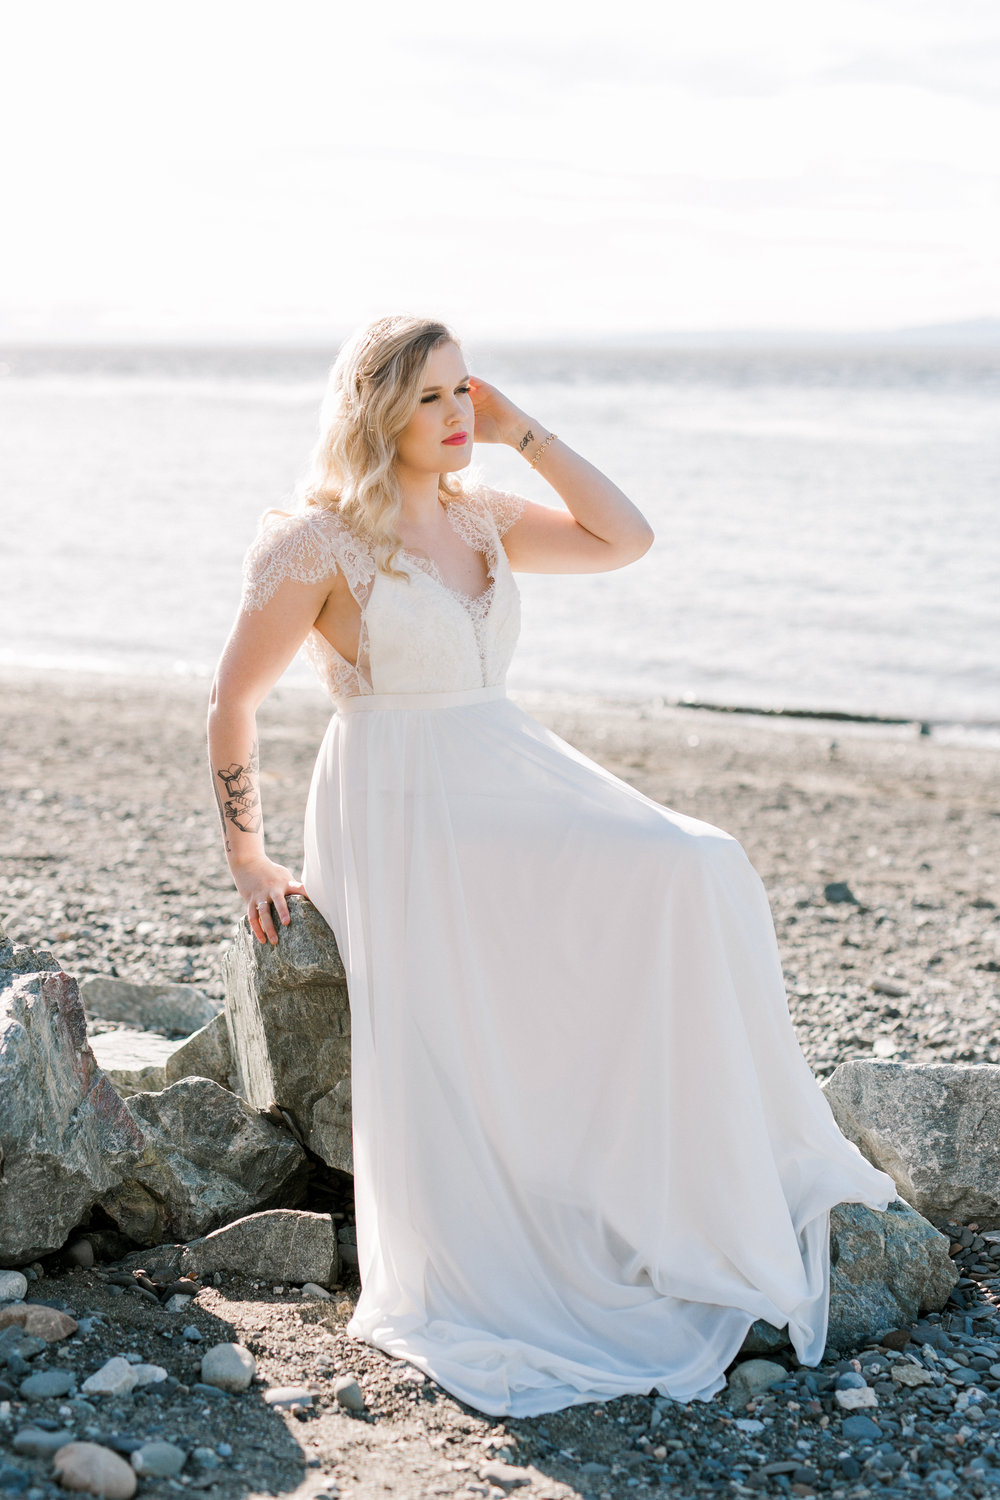 Windswept away in Truvelle - with Juliana Renee Photography